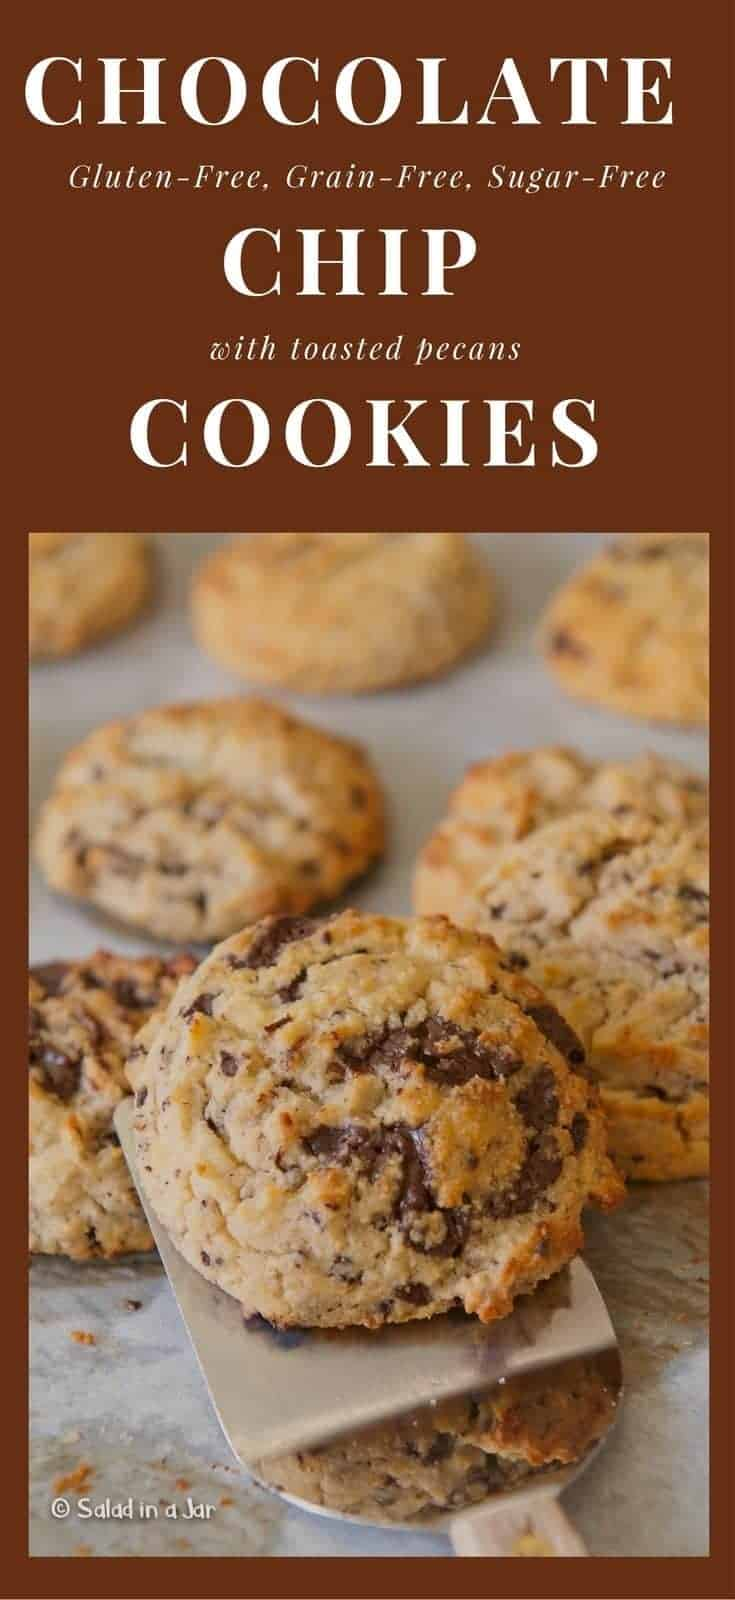 Glutin-Free, Grain-Free, Sugar-Free Chocolate Chip Cookies--recipe includes almond flour, 85% chocolate and unsweetened applesauce